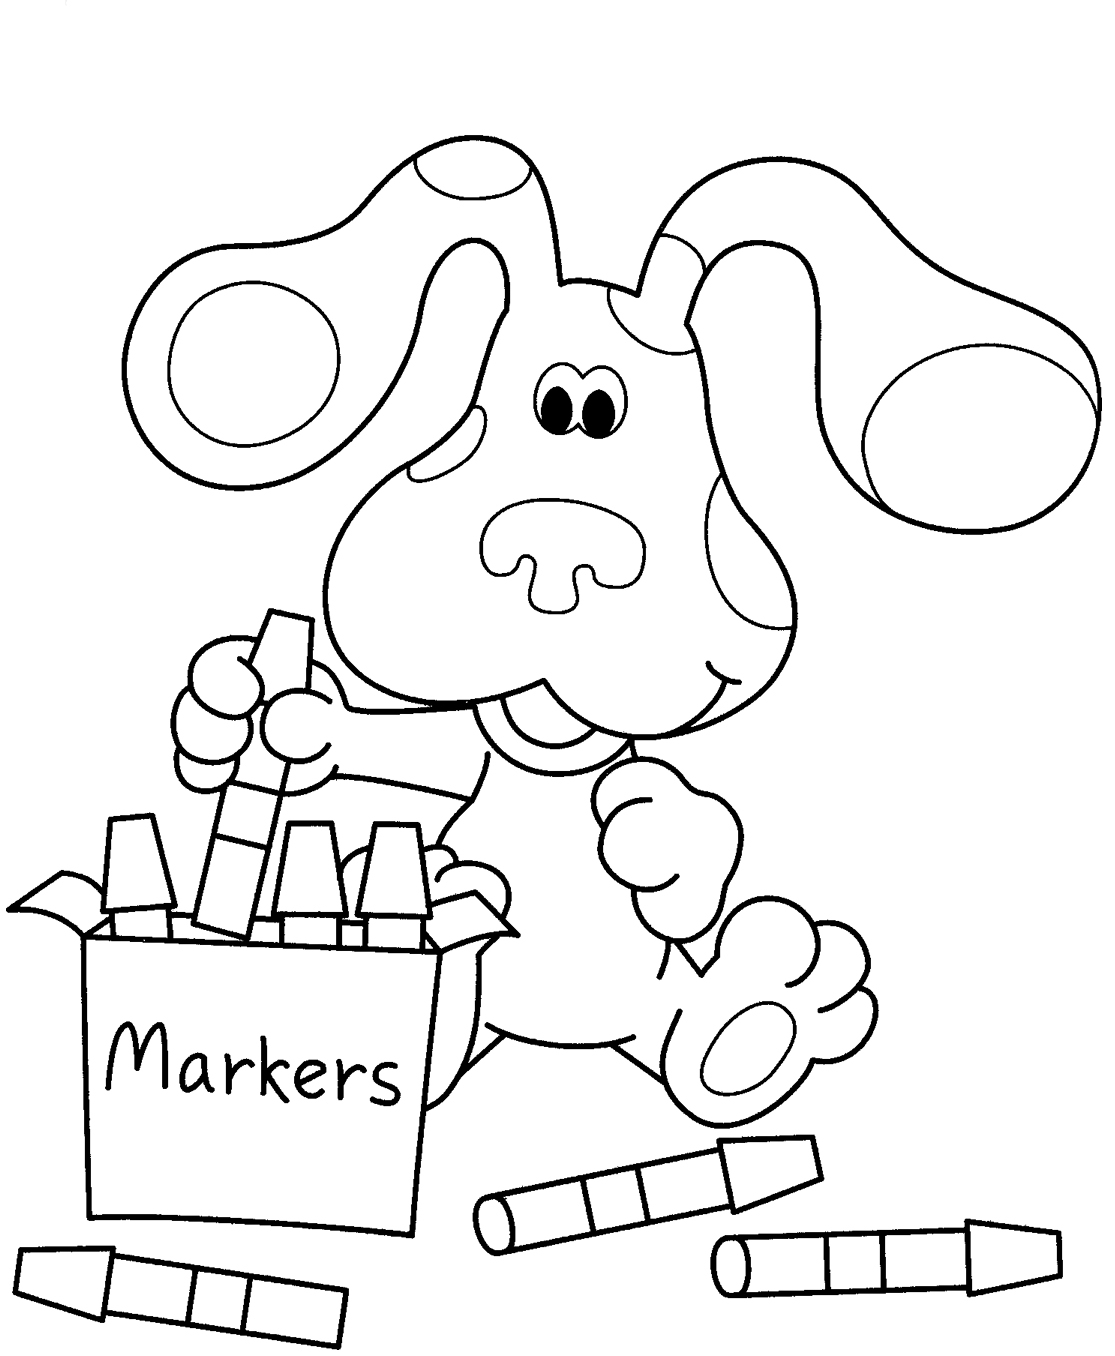 coloring pages nick jr - photo#15